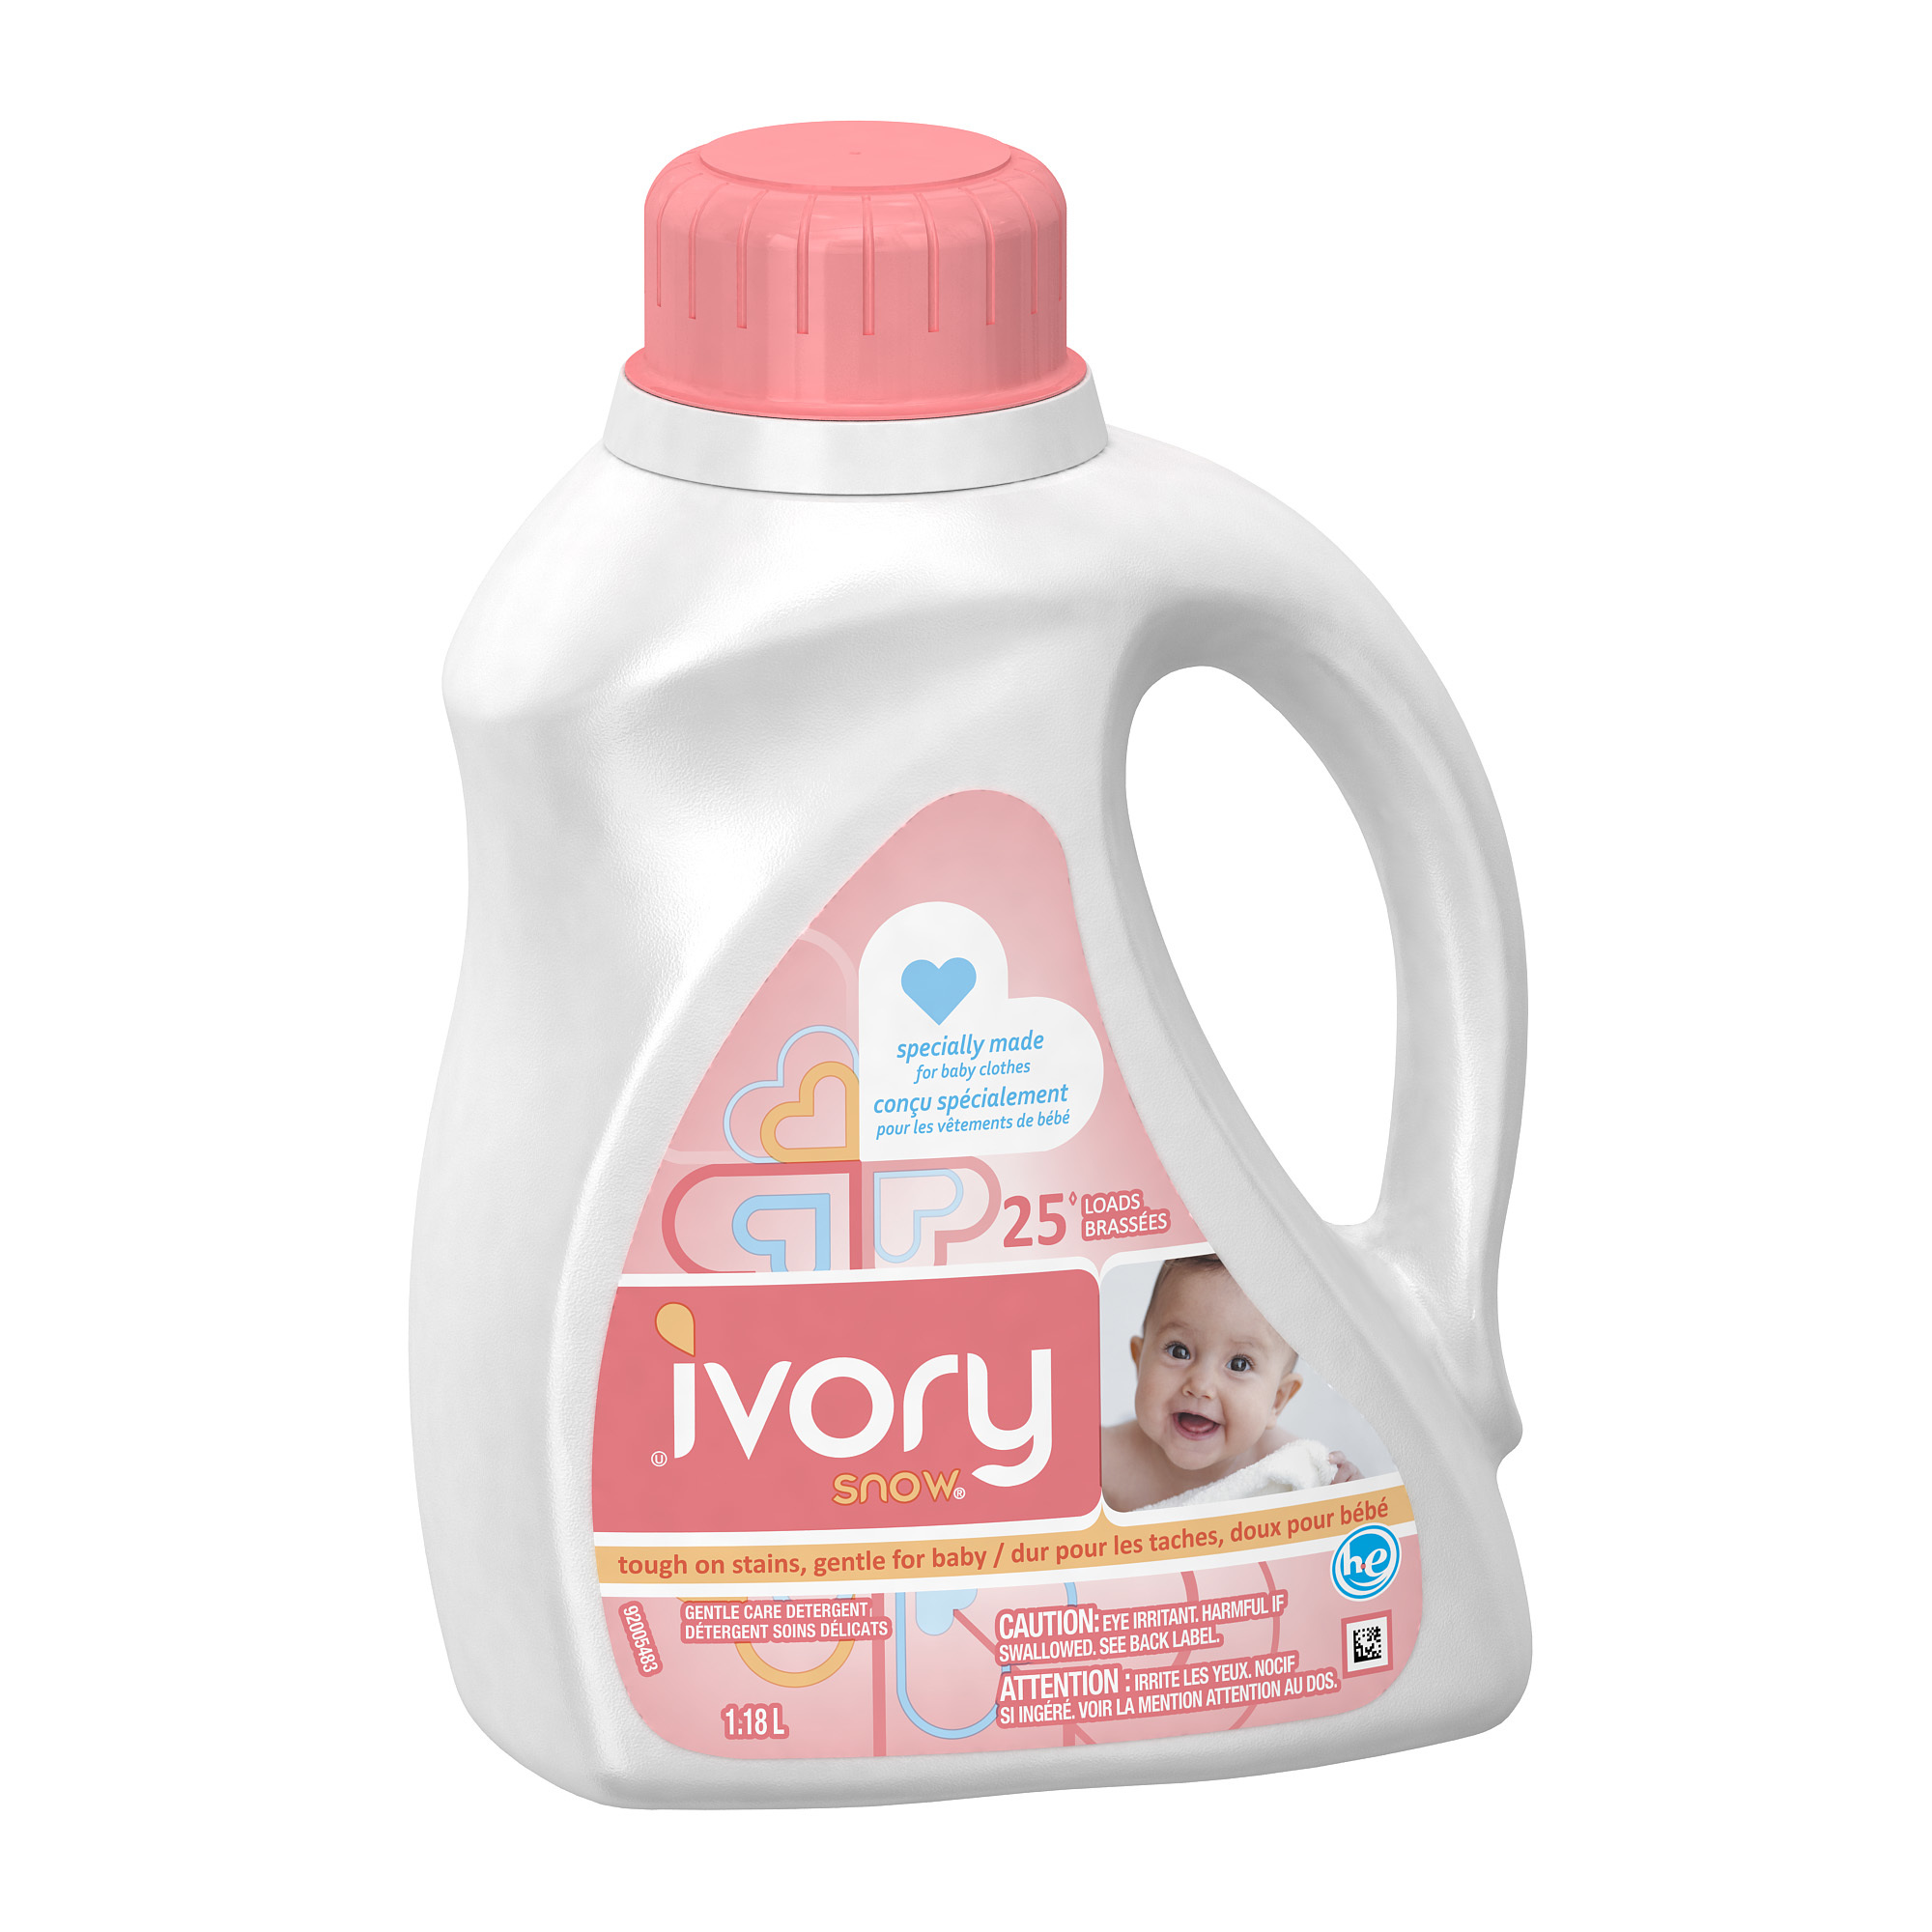 All Concentrated Laundry Detergent